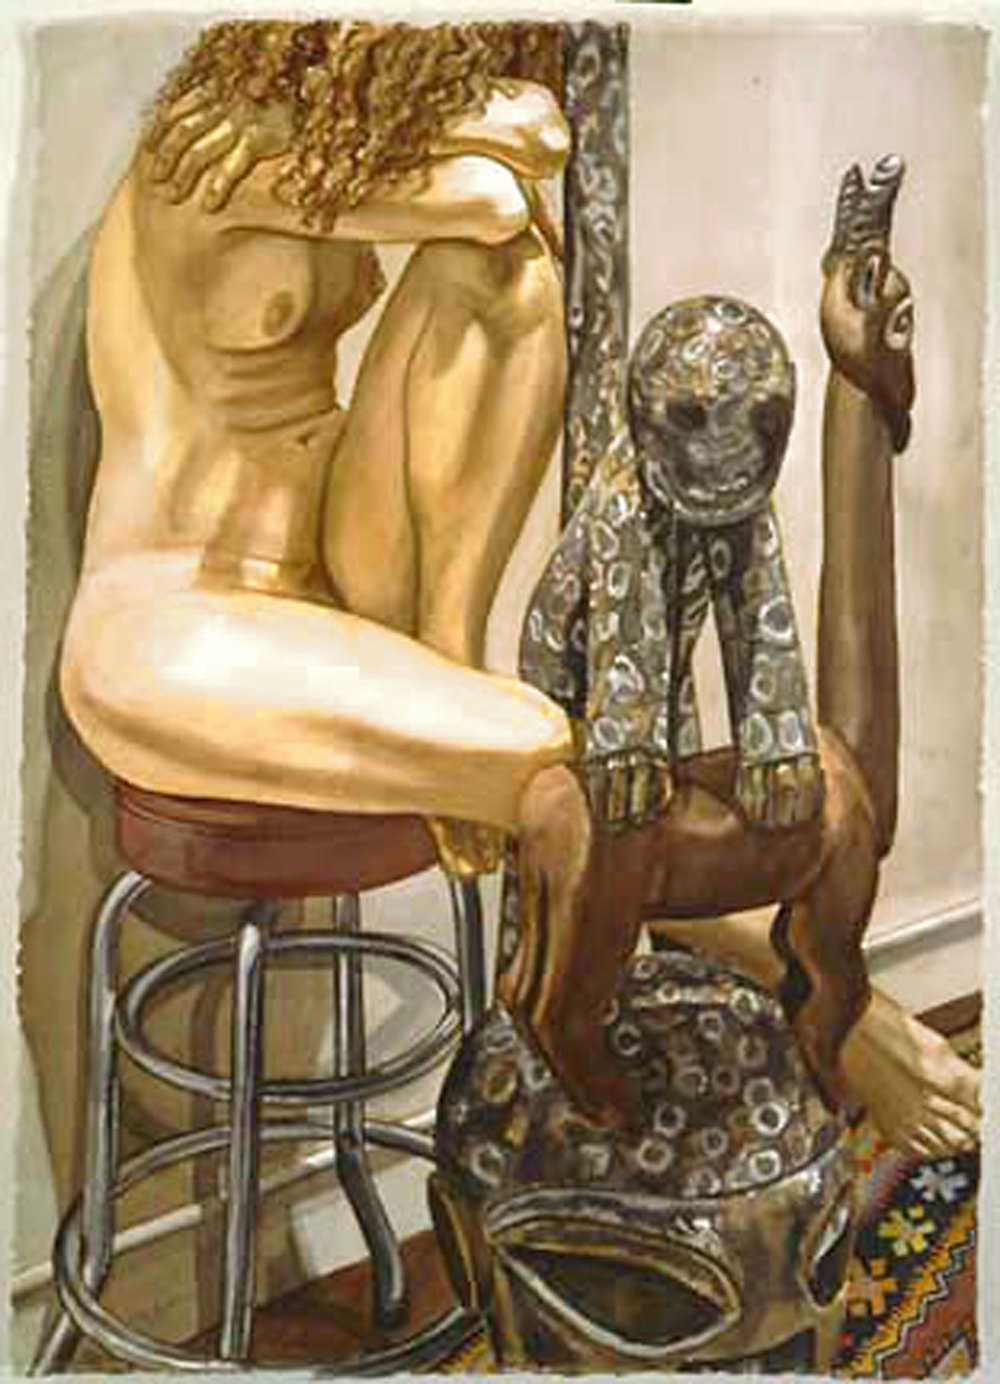 NUDE WITH YORUBA HEADDRESS , 1994 Watercolor on paper 41 1/4 x 29 1/2 inches